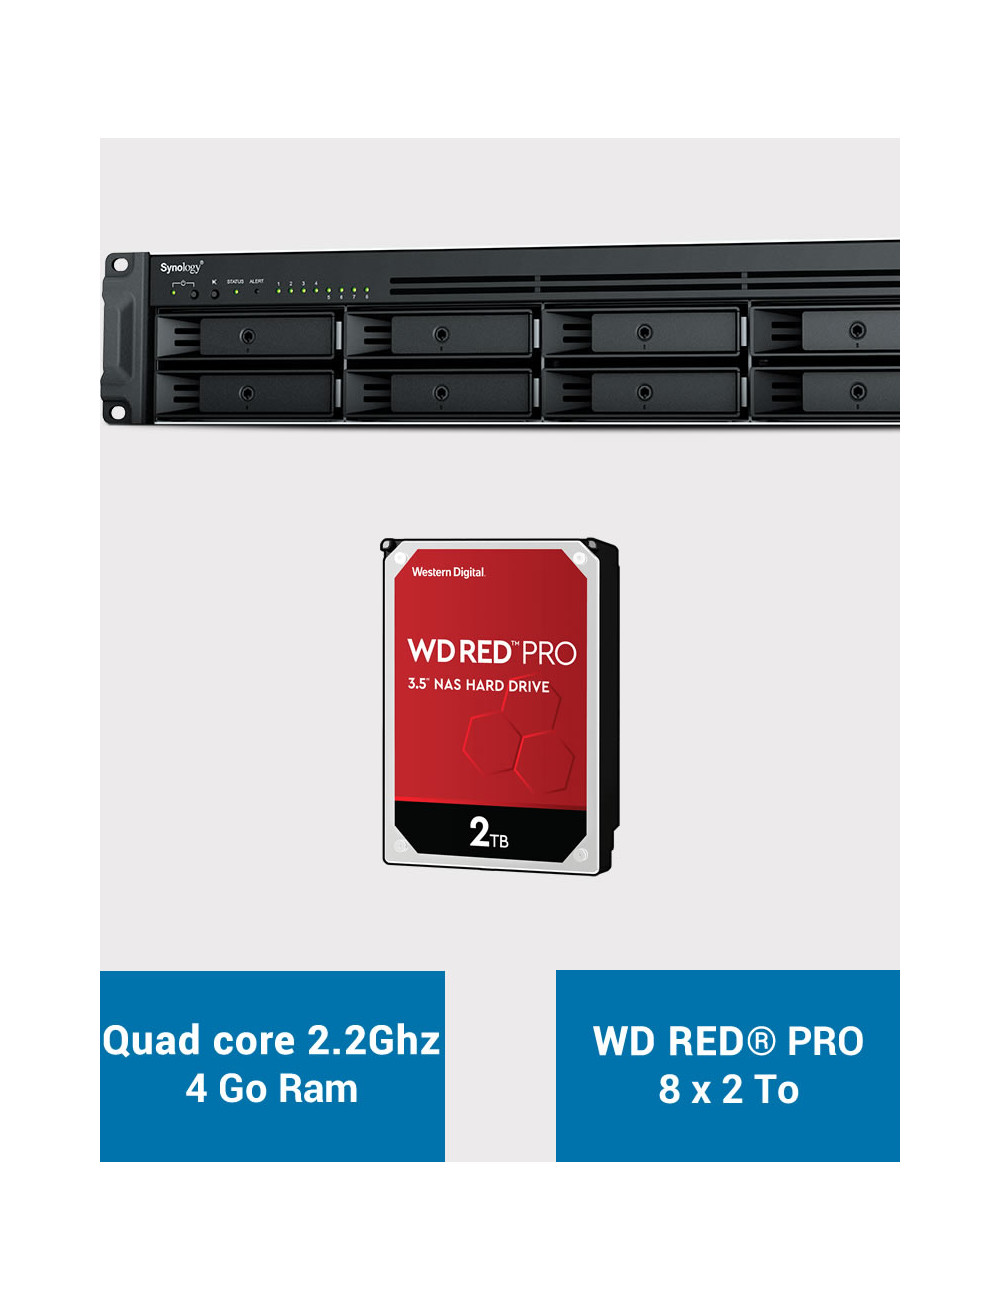 Synology RS1221+ Serveur NAS Rack WD RED PRO 16To (8x2To)